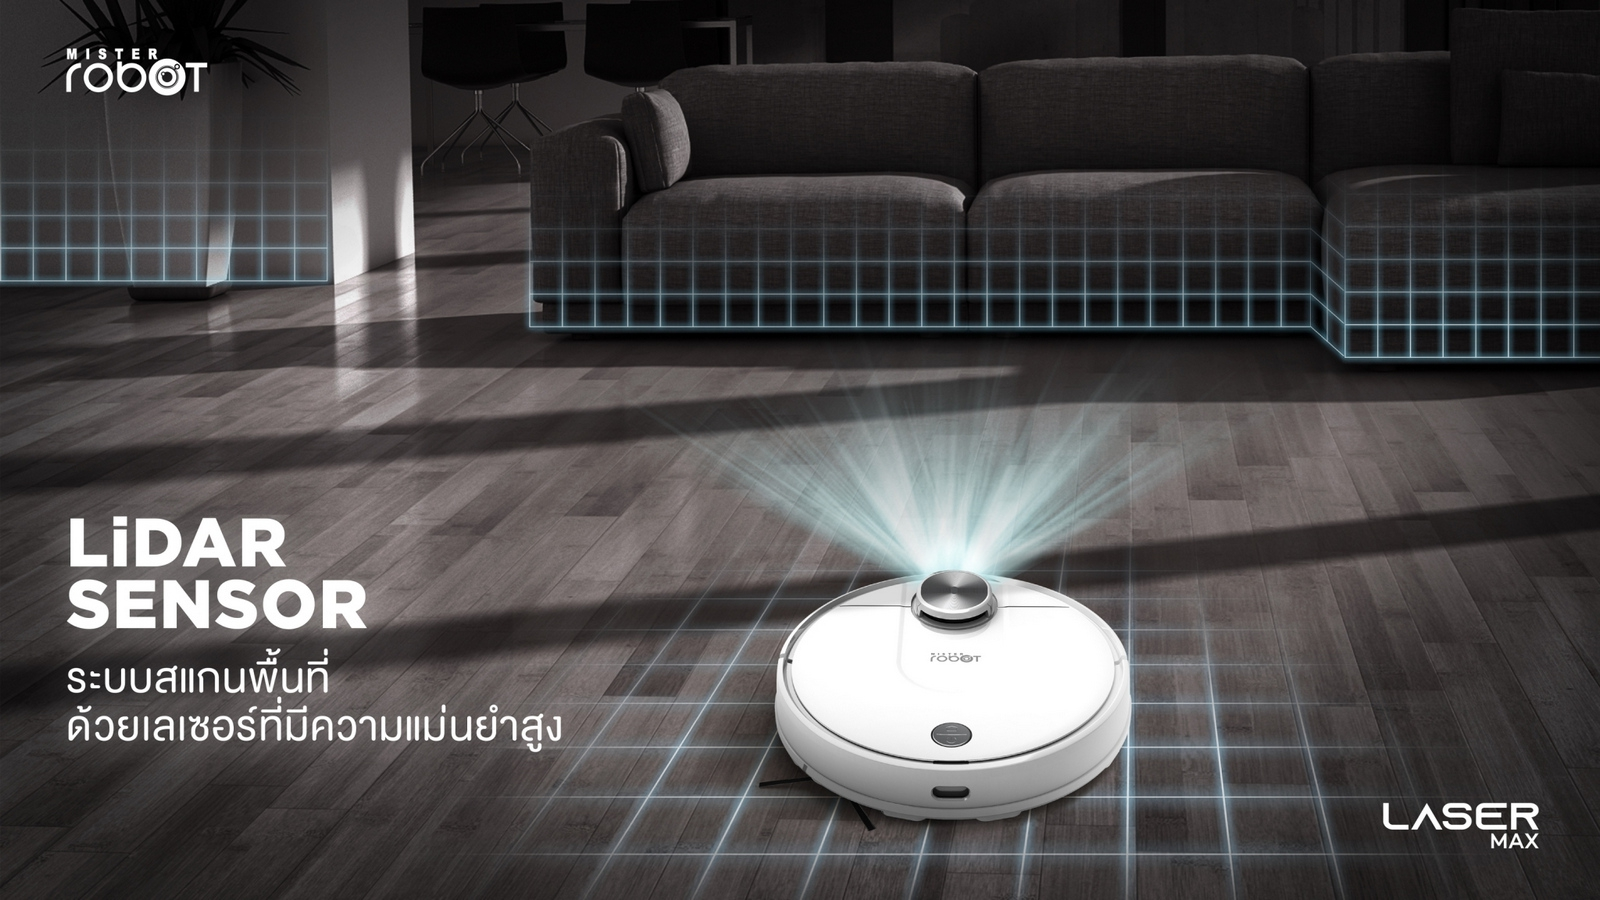 mister-robot-laser-max-feature-laser-guided-navigation-system